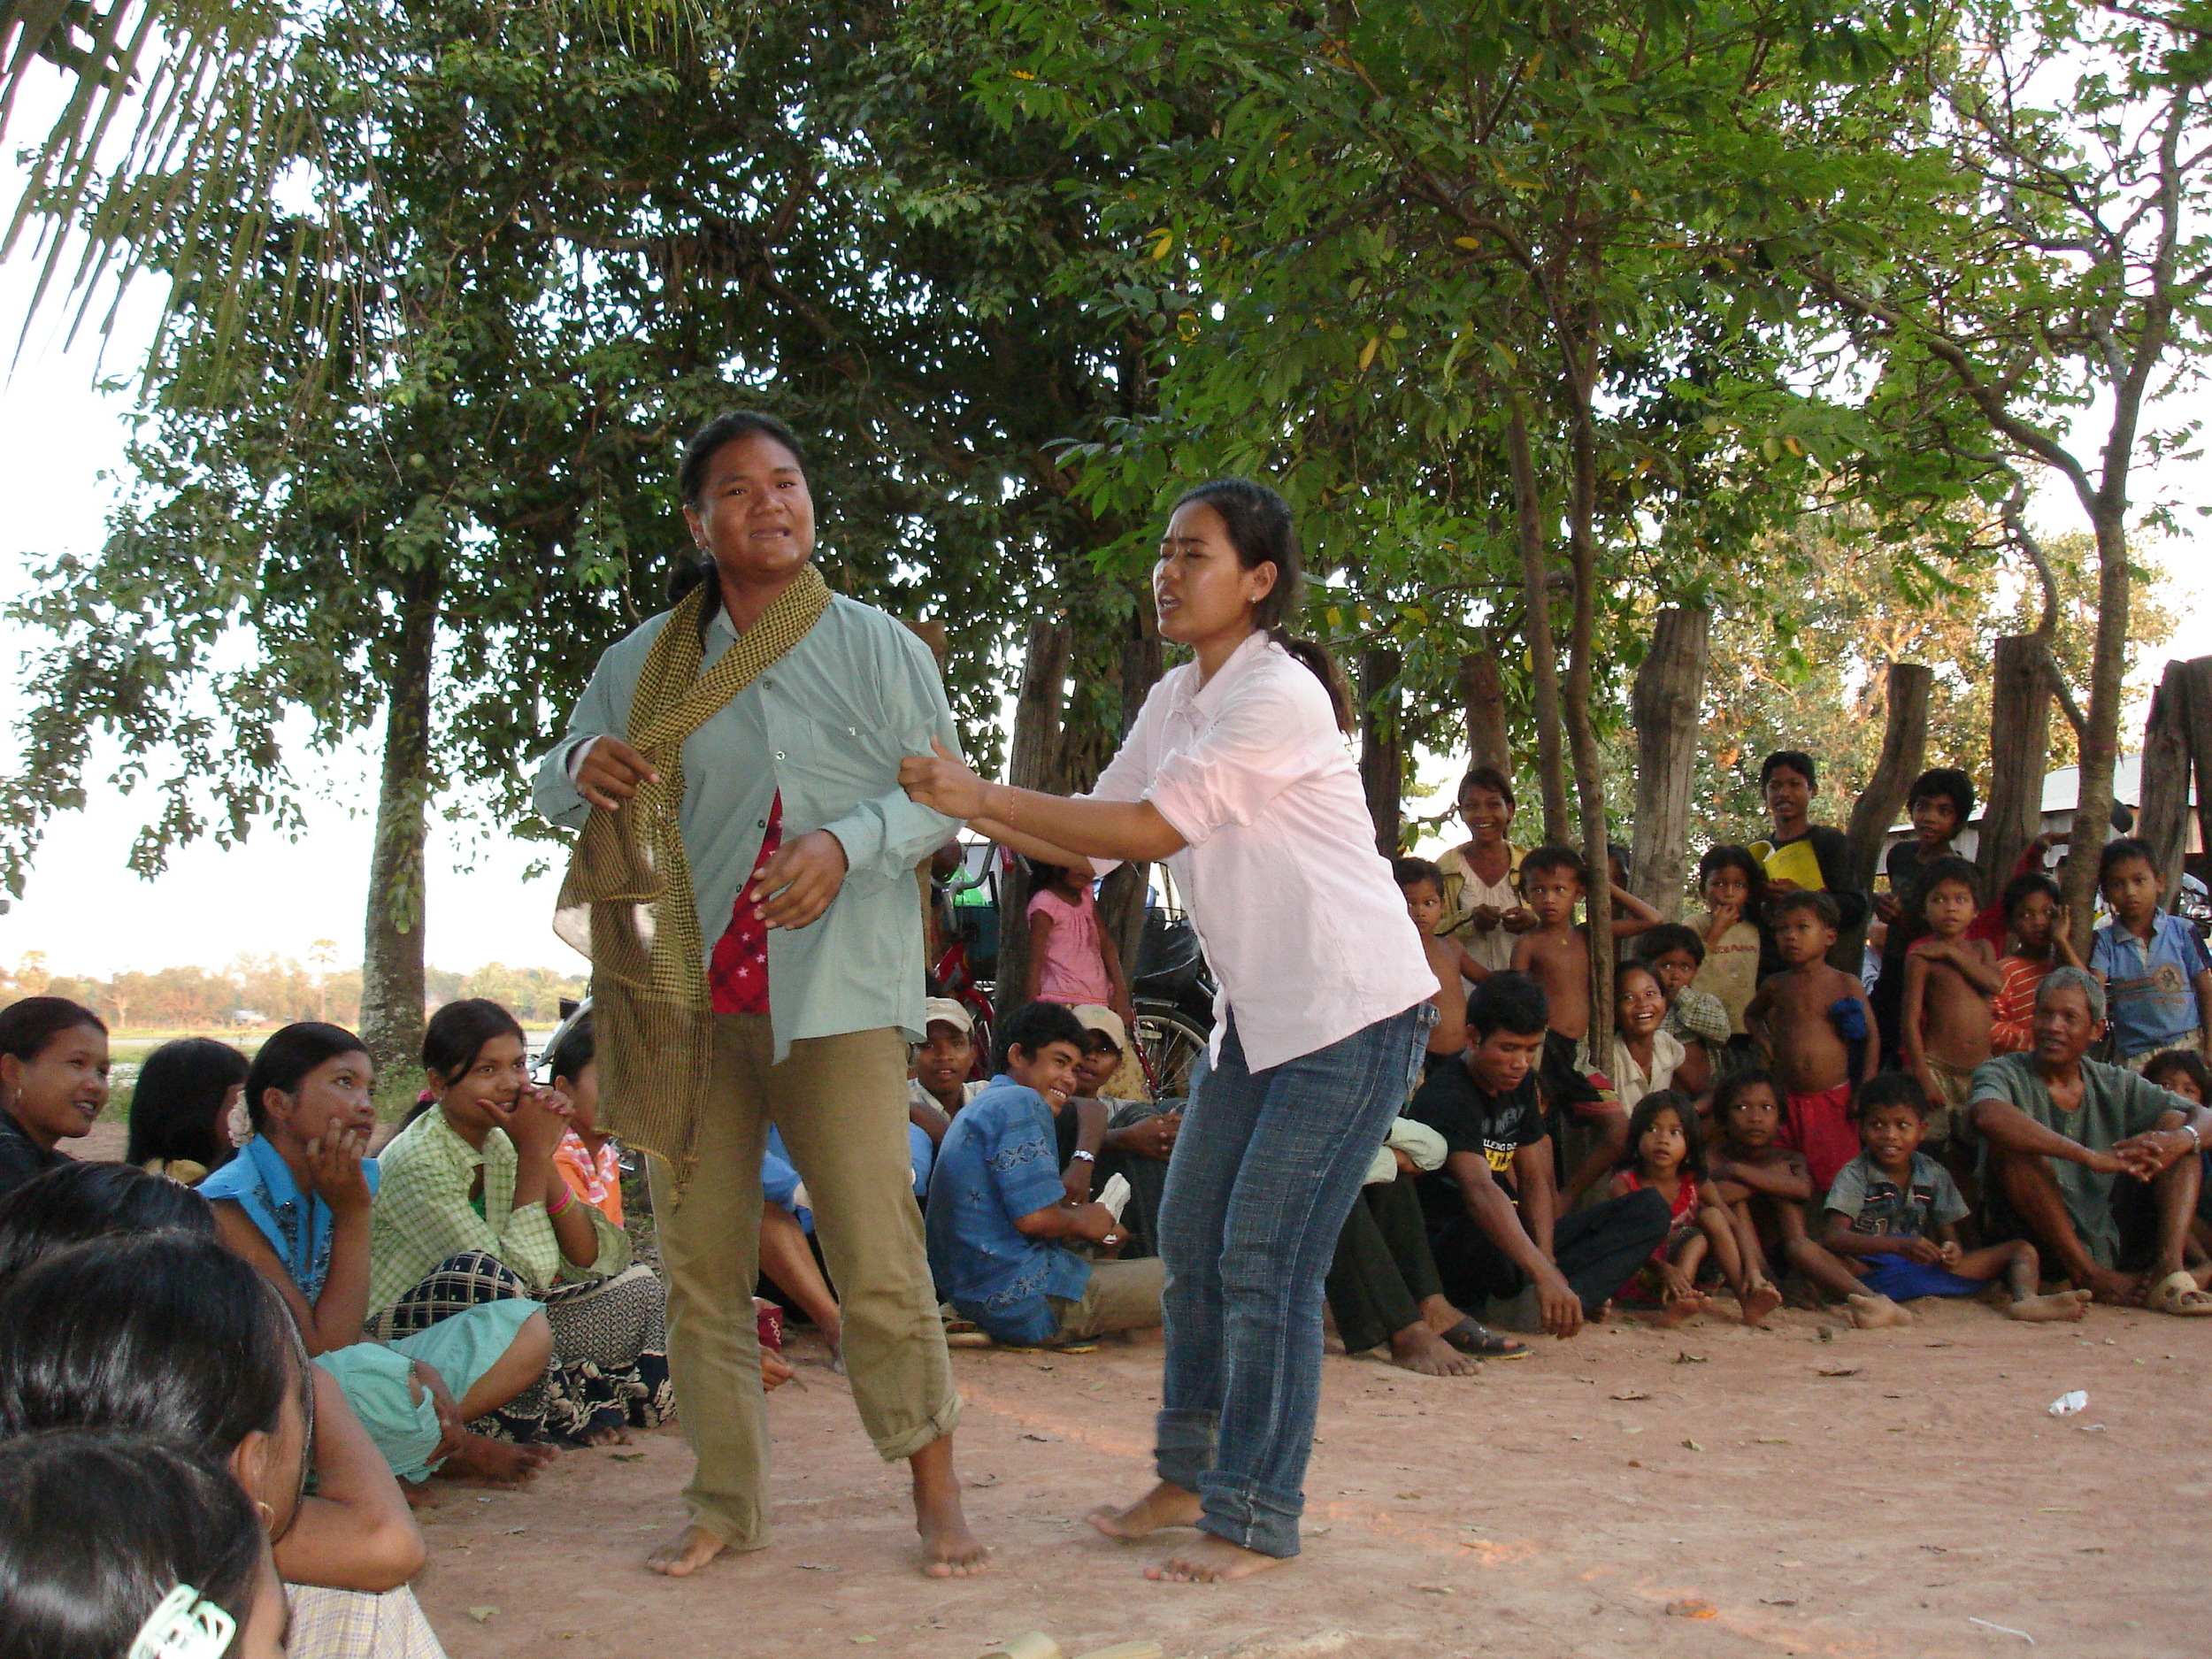 Forum theatre domestic violence play, Uddar Meanchey, Cambodia